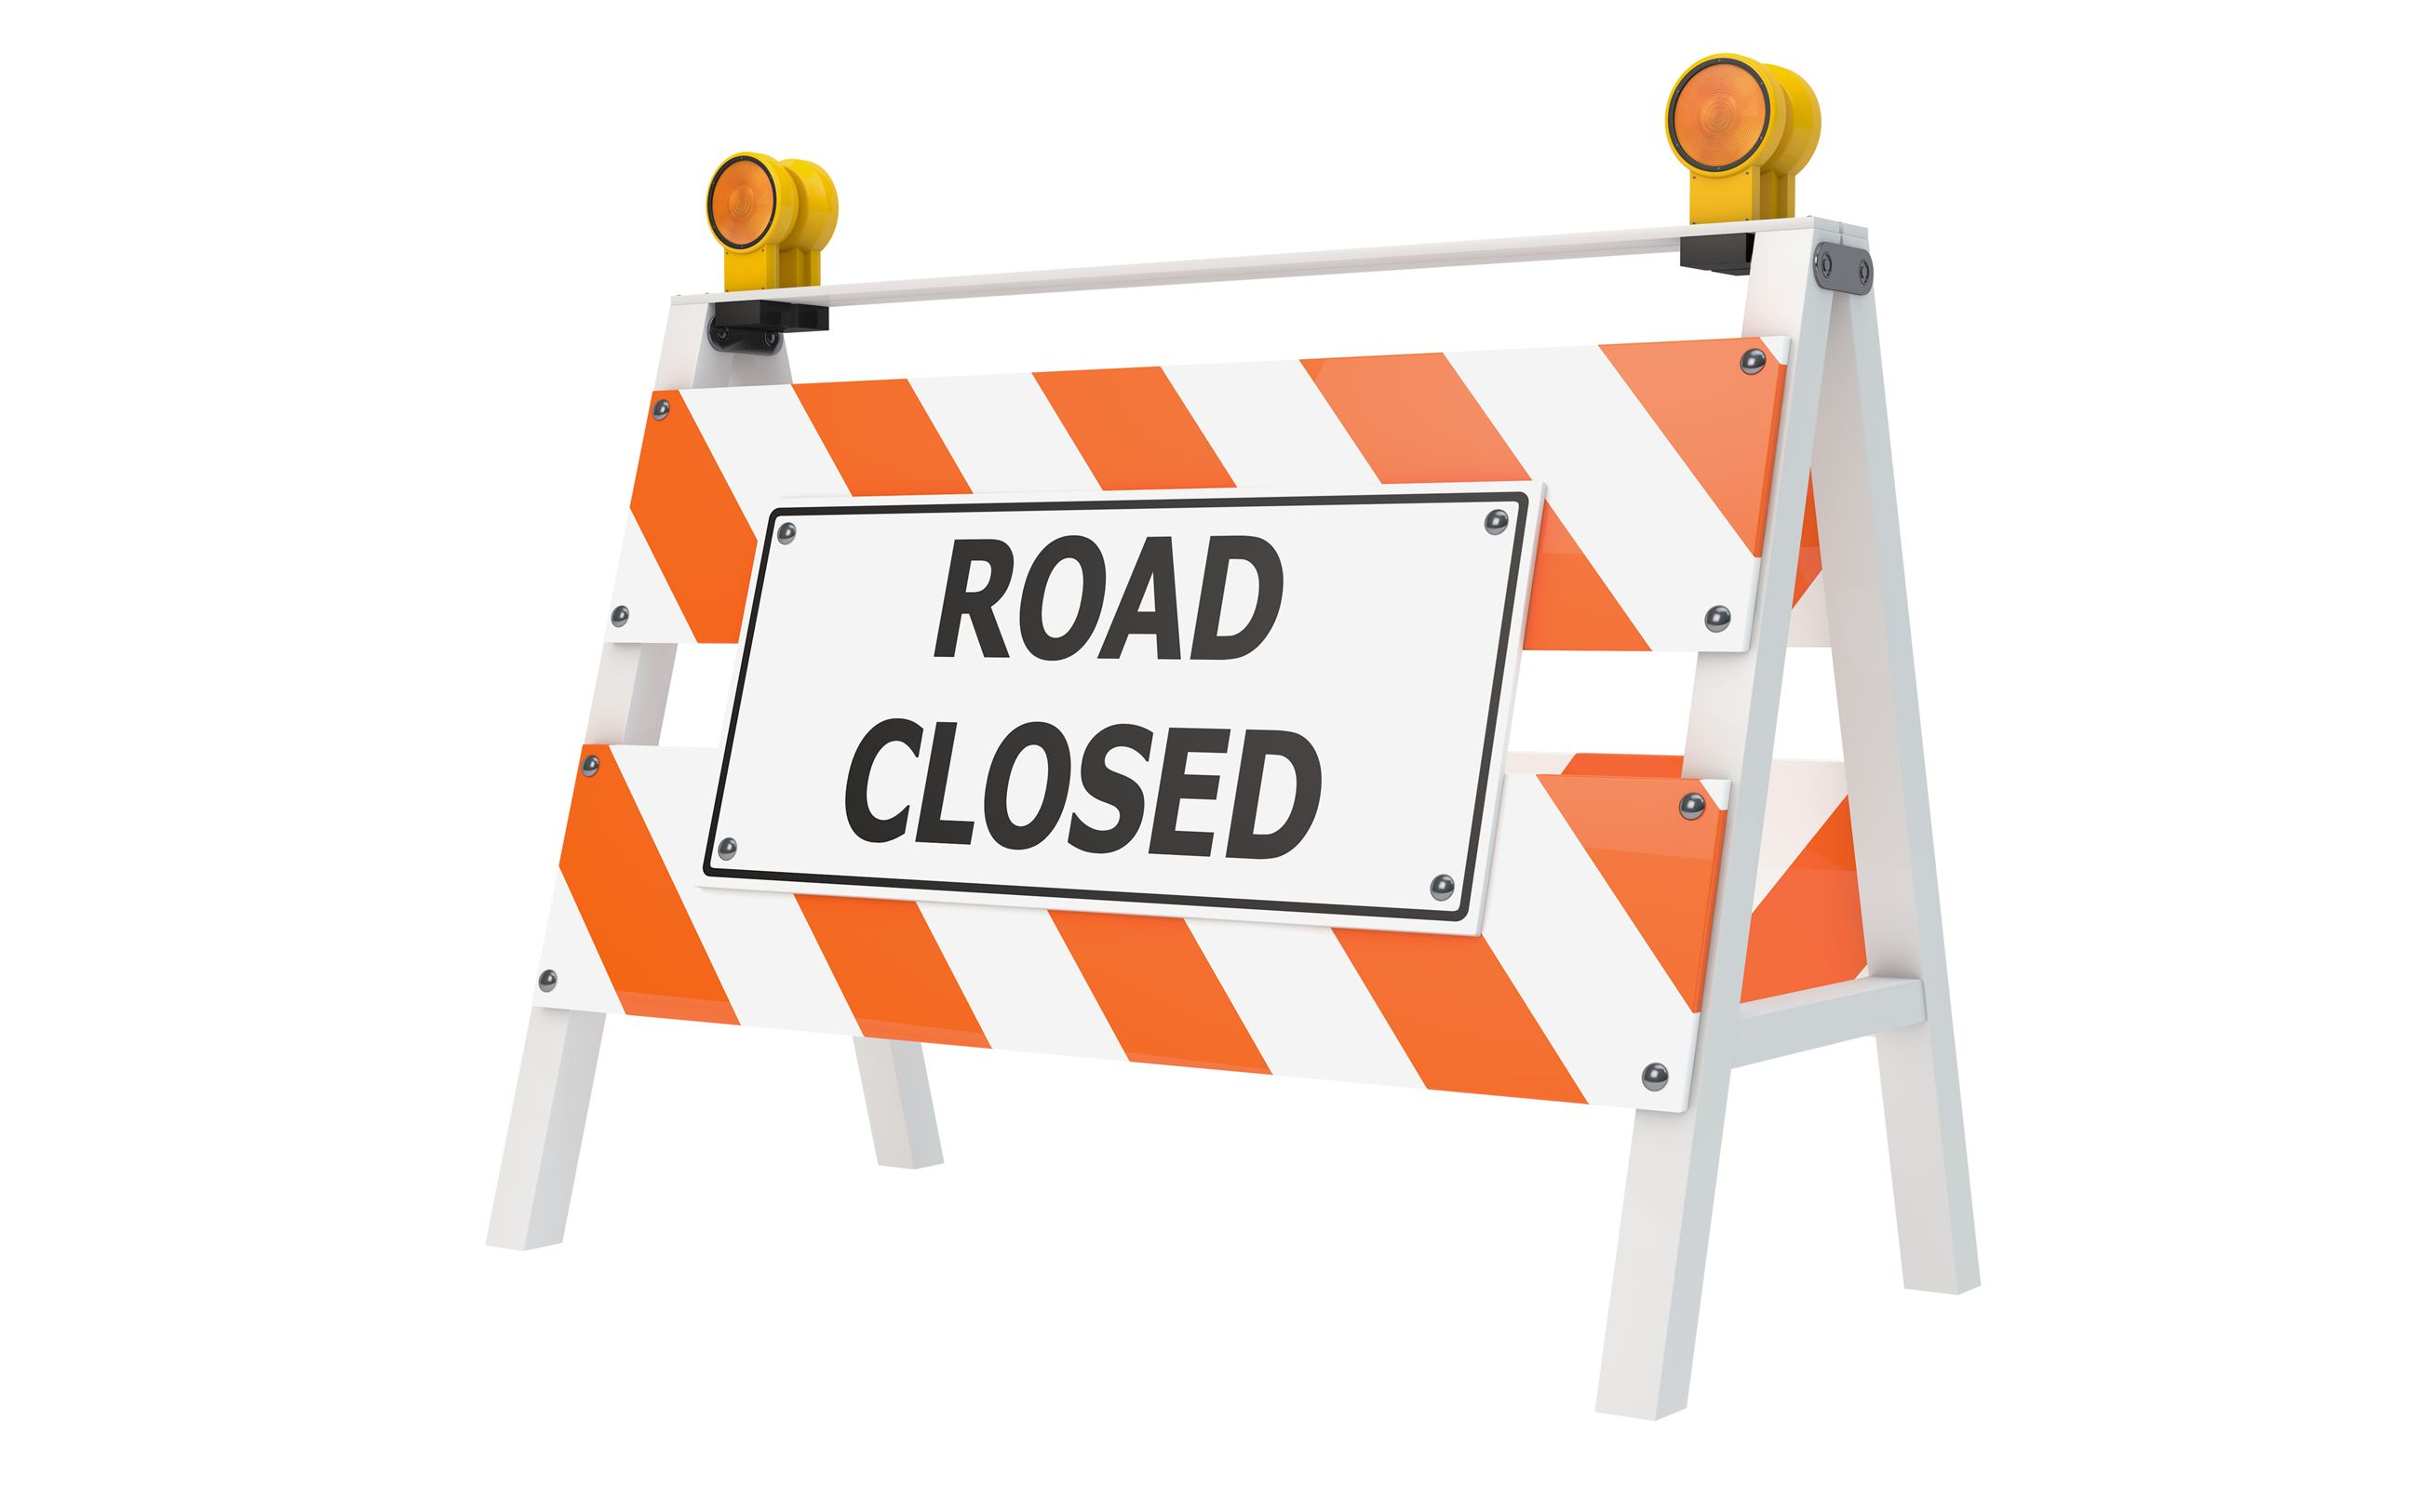 Road closed shutterstock_119223532